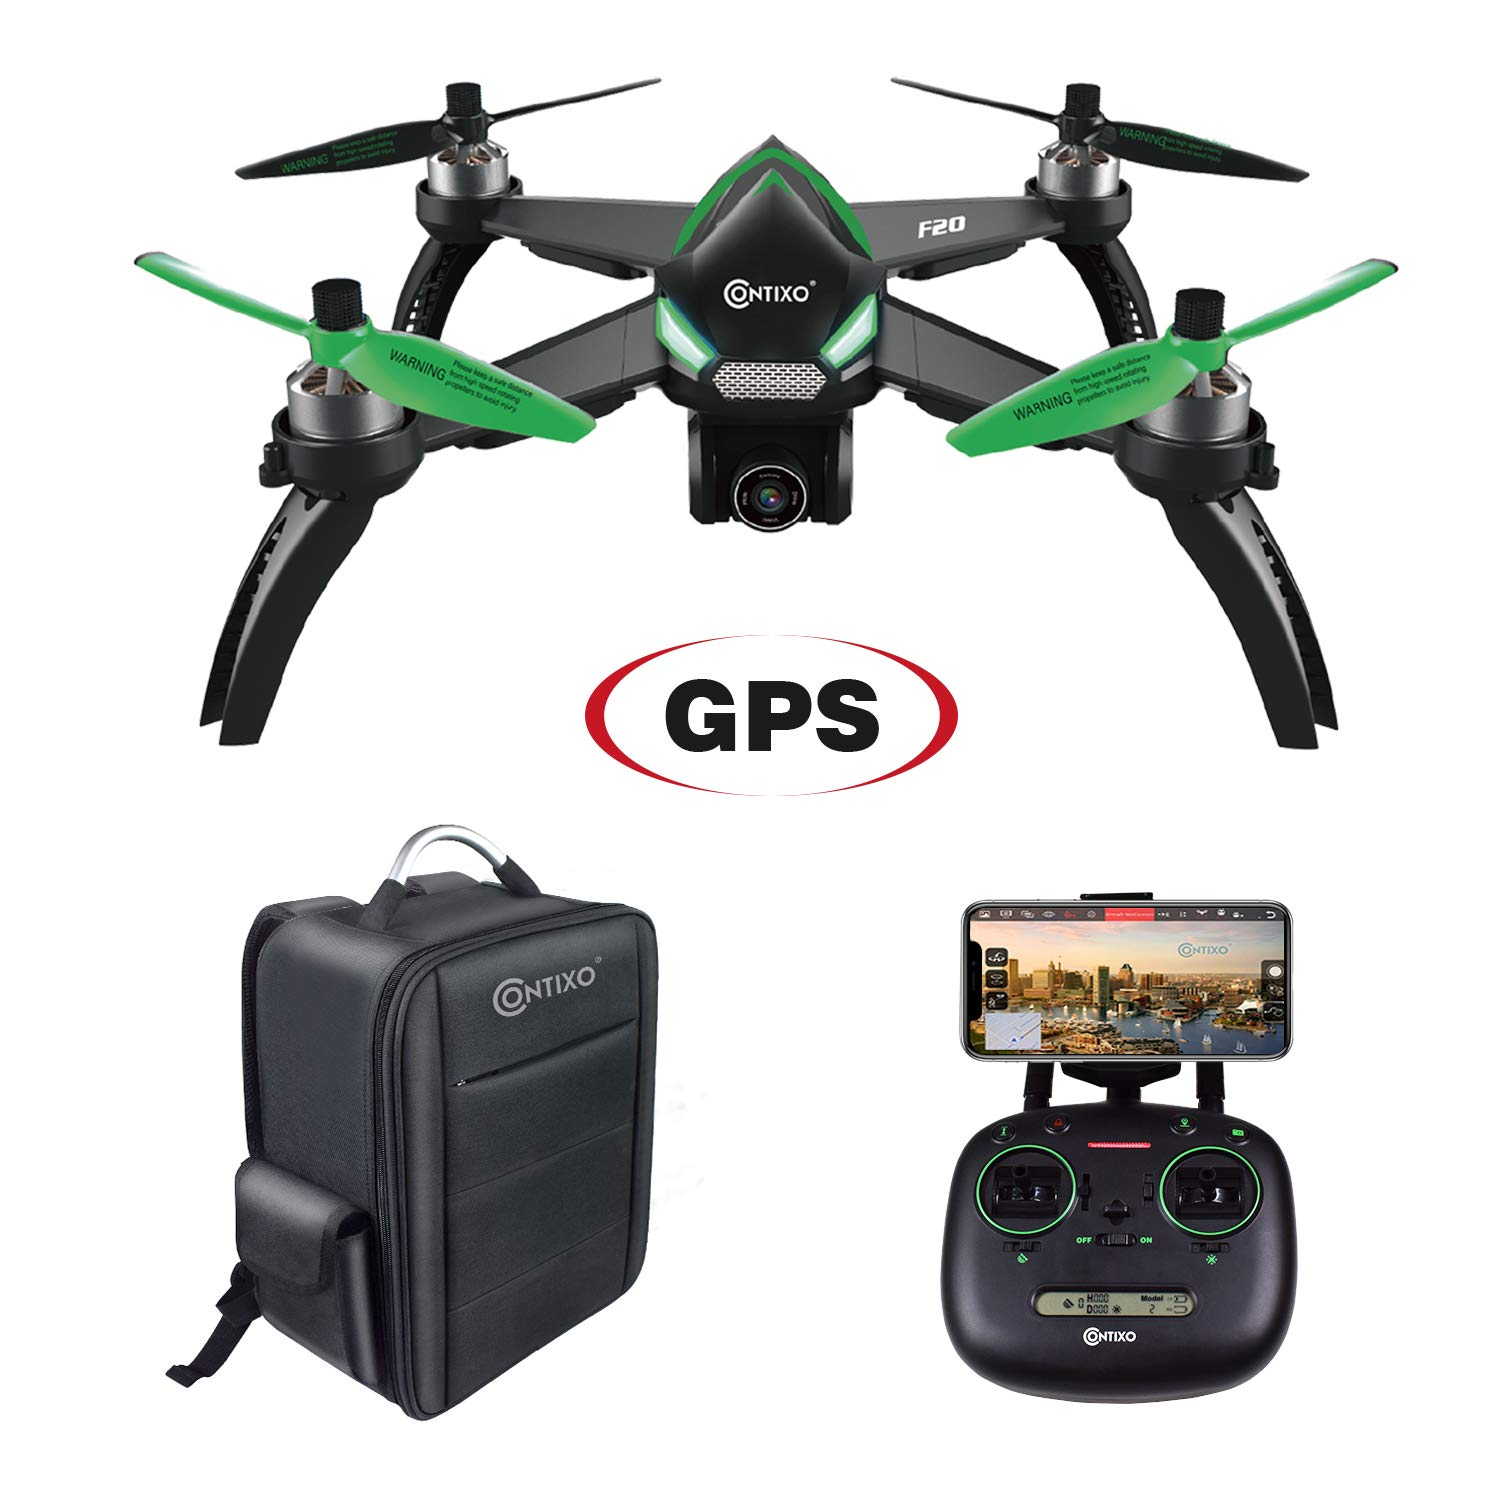 Contixo F20 RC Remote App Controlled Quadcopter Drone | 1080p HD WiFi Camera, Follow Me, Auto Hover, Altitude Hold, GPS, 1-Key Takeoff & Landing, Auto Return +Free Custom Backpack ($50 Value)